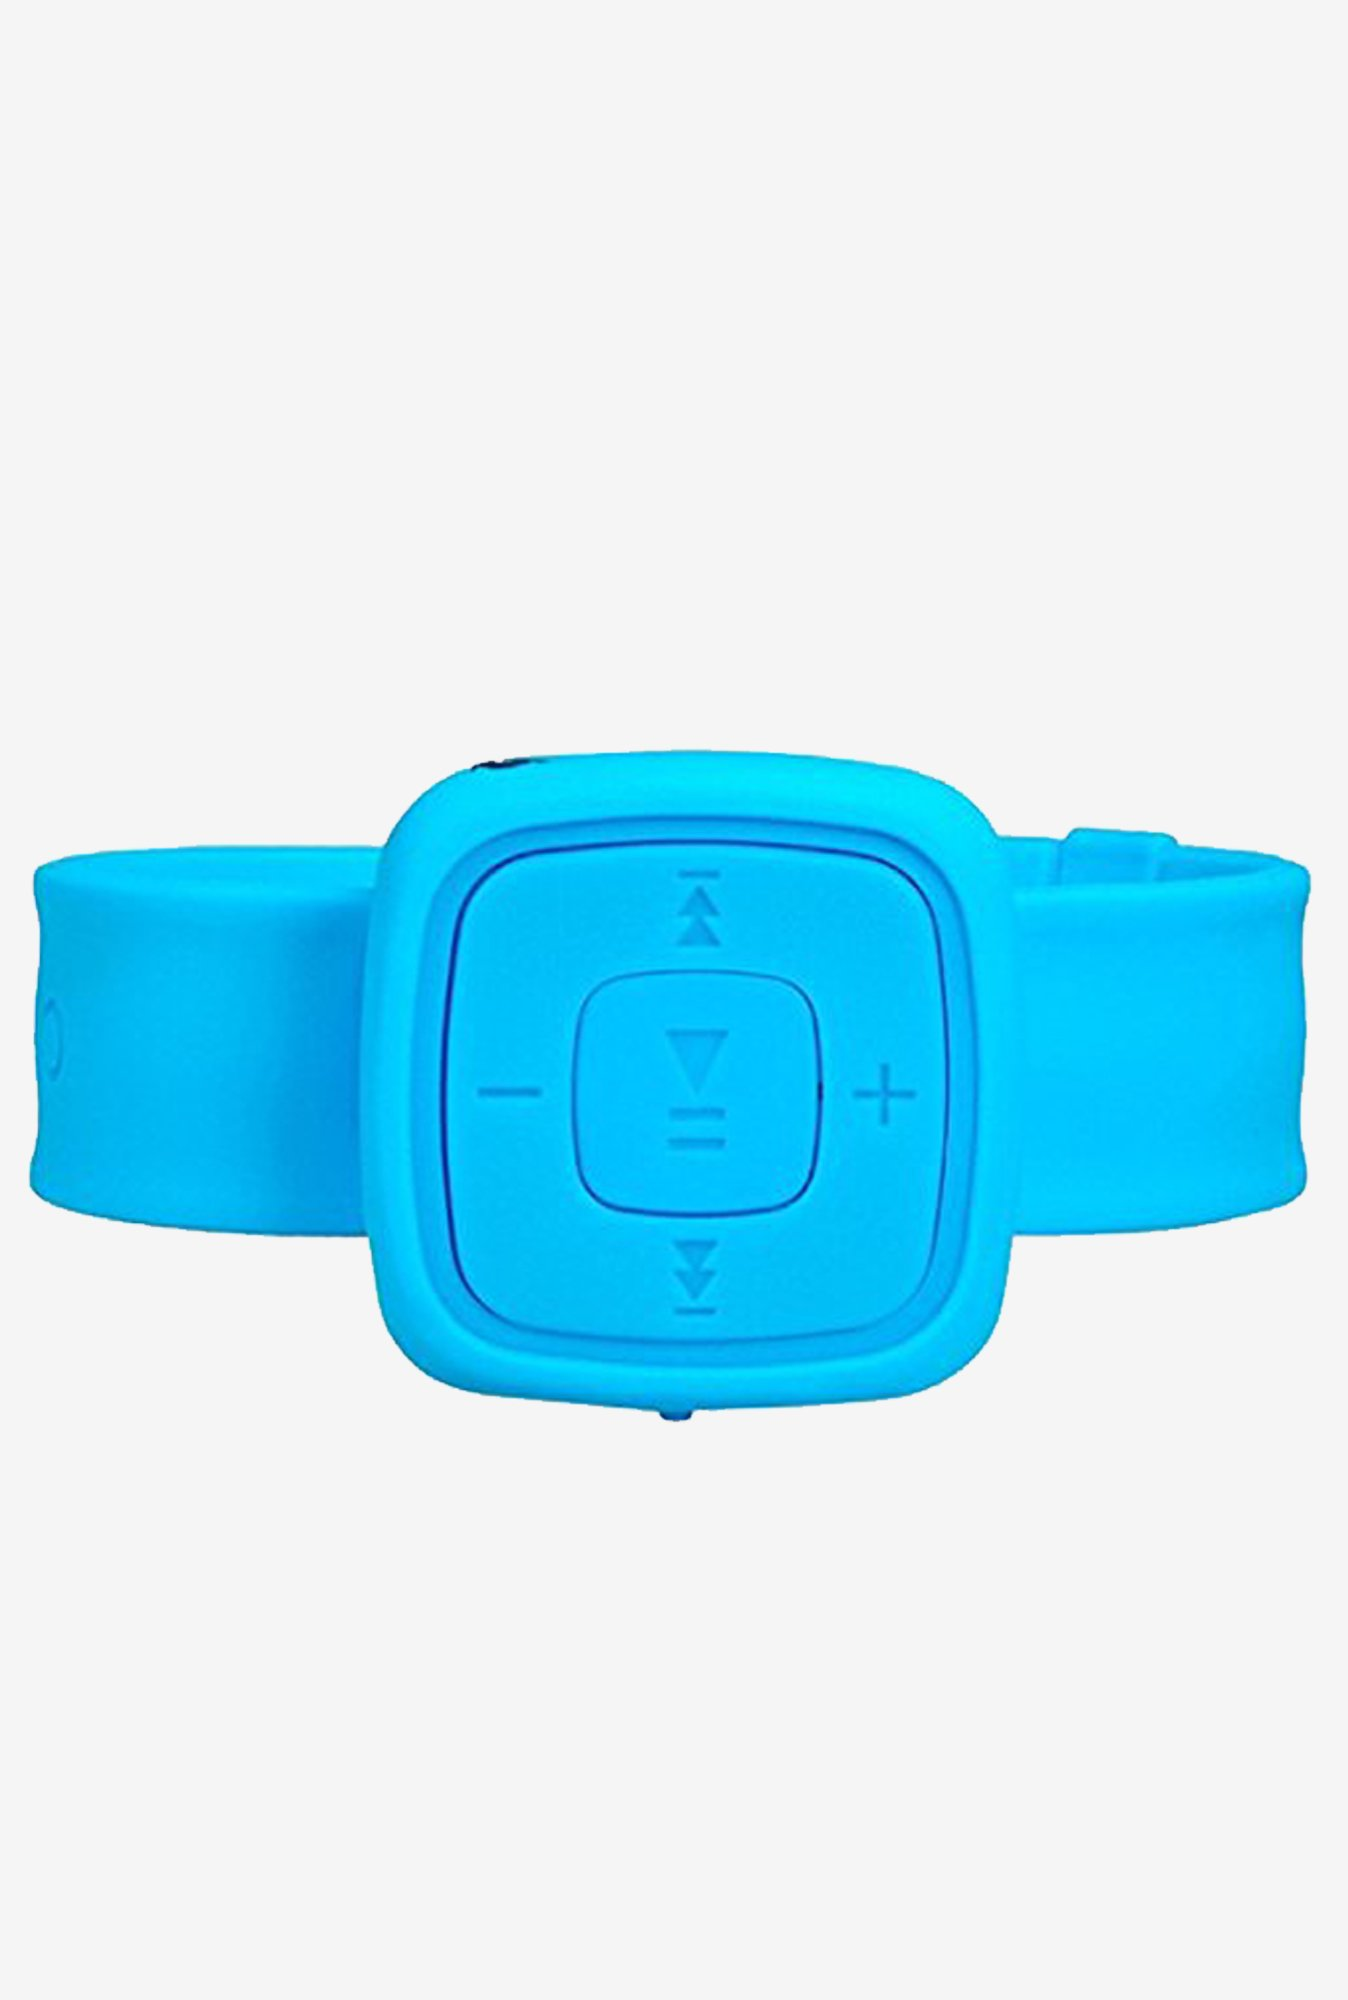 Nevis Combo01 Wrist watch Design Mp3 player